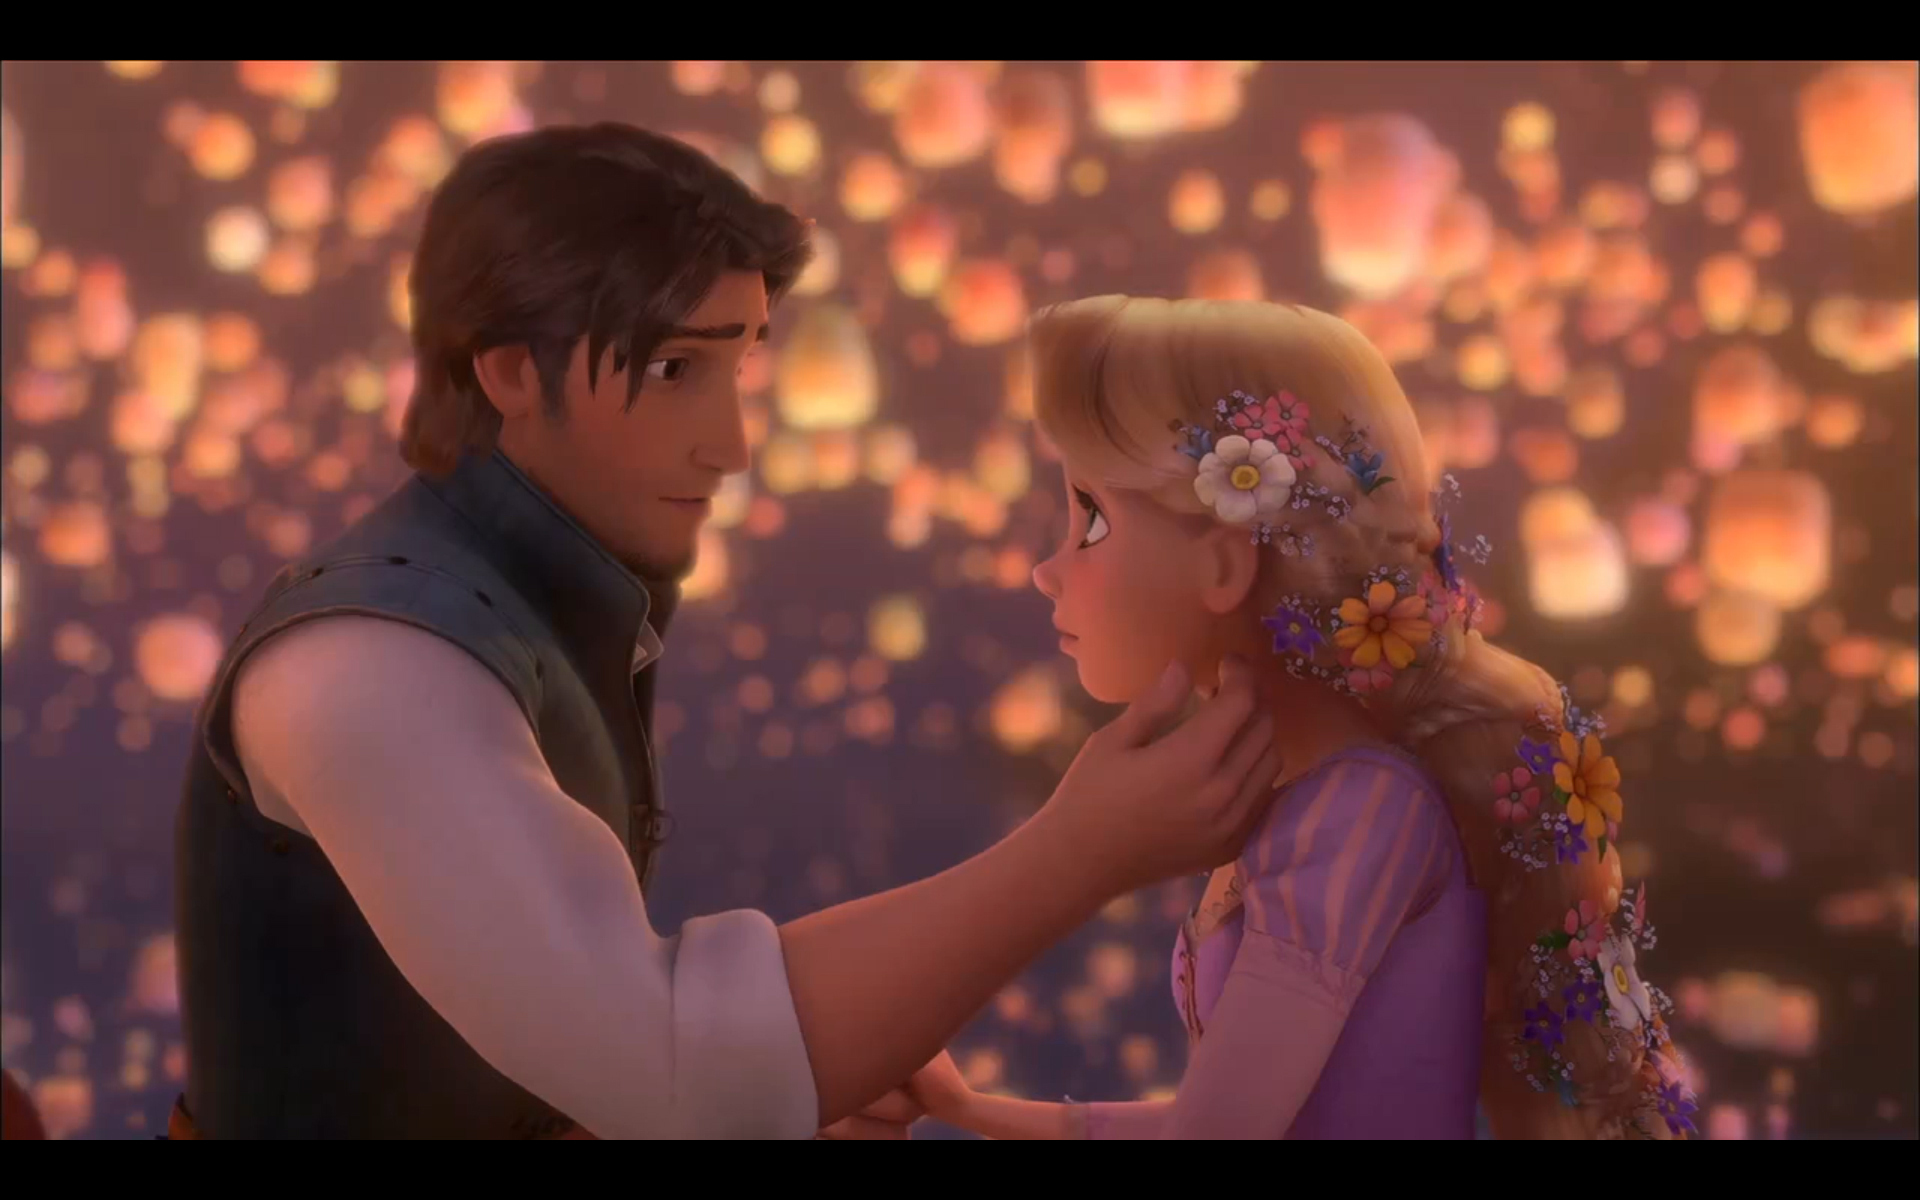 https://i1.wp.com/images4.fanpop.com/image/photos/17000000/Rapunzel-and-Flynn-tangled-17057916-1920-1200.jpg